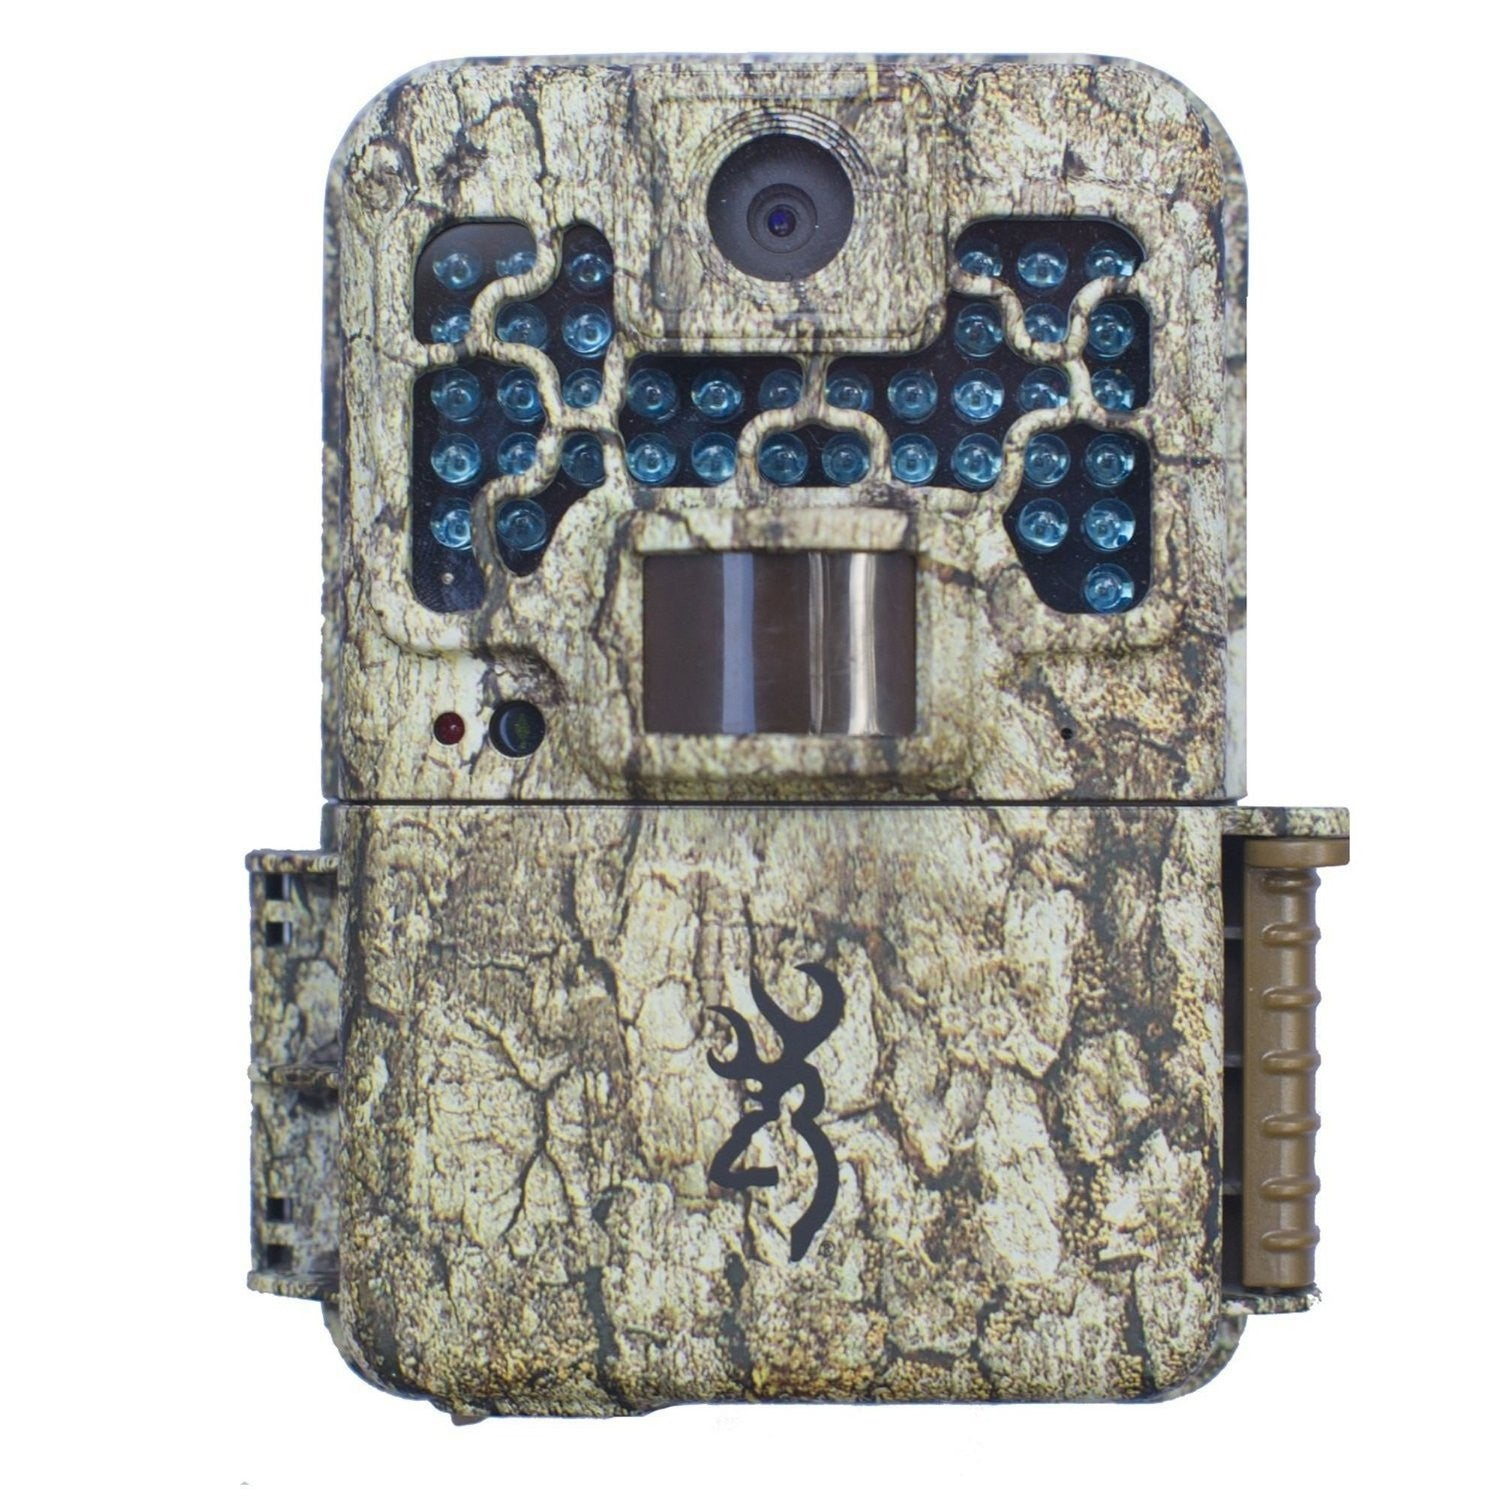 Browning Recon Force FHD Camera, Camouflage - Back40Trading2